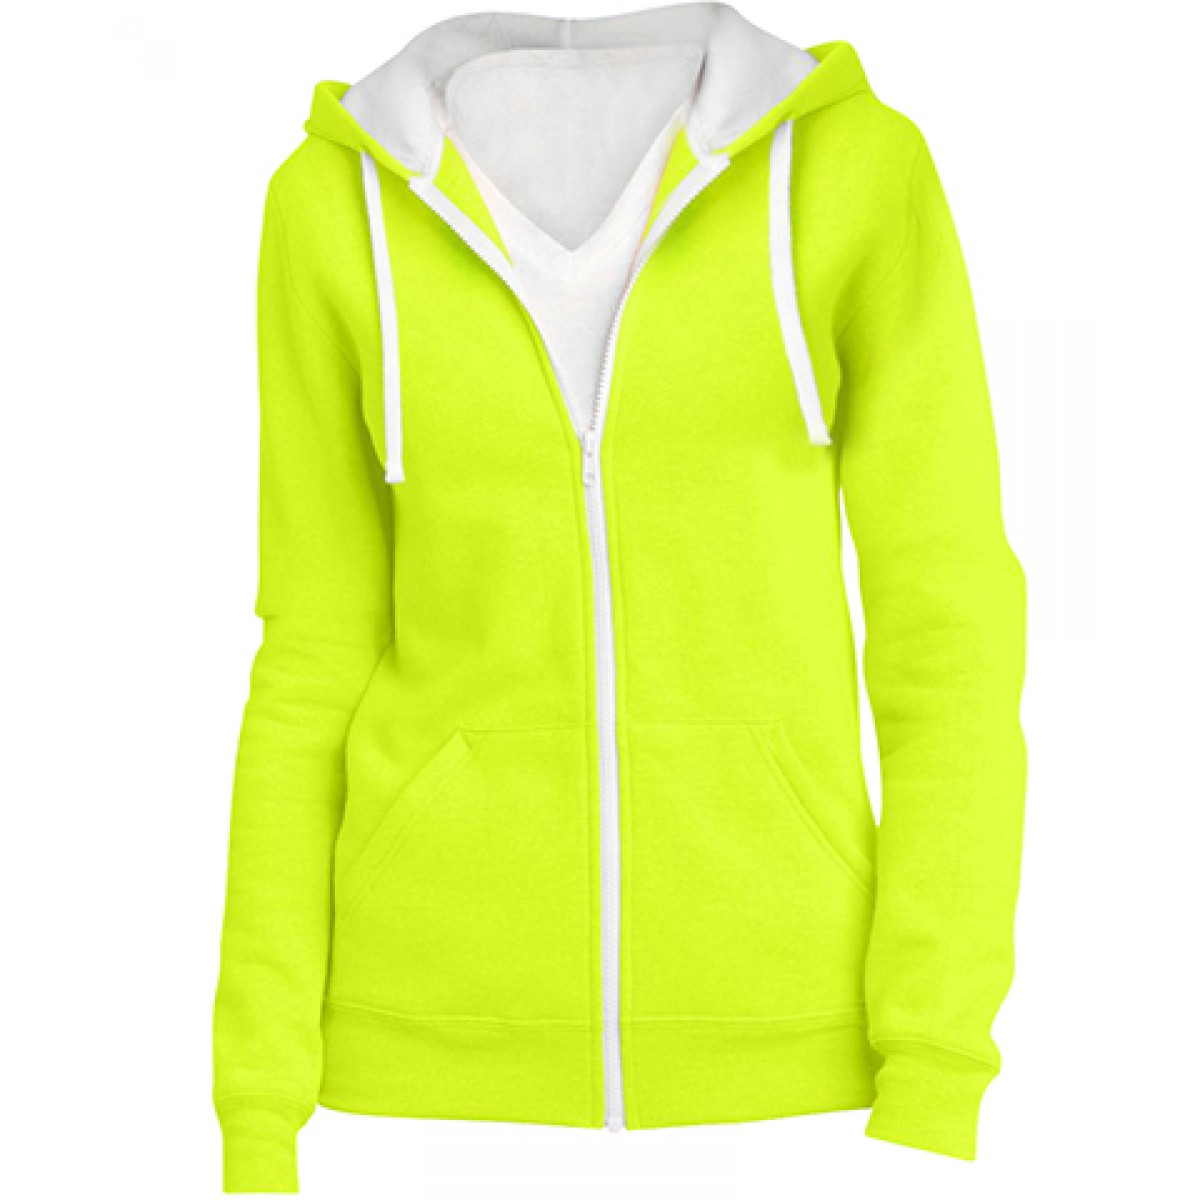 Juniors Full-Zip Hoodie-Safety Green-3XL